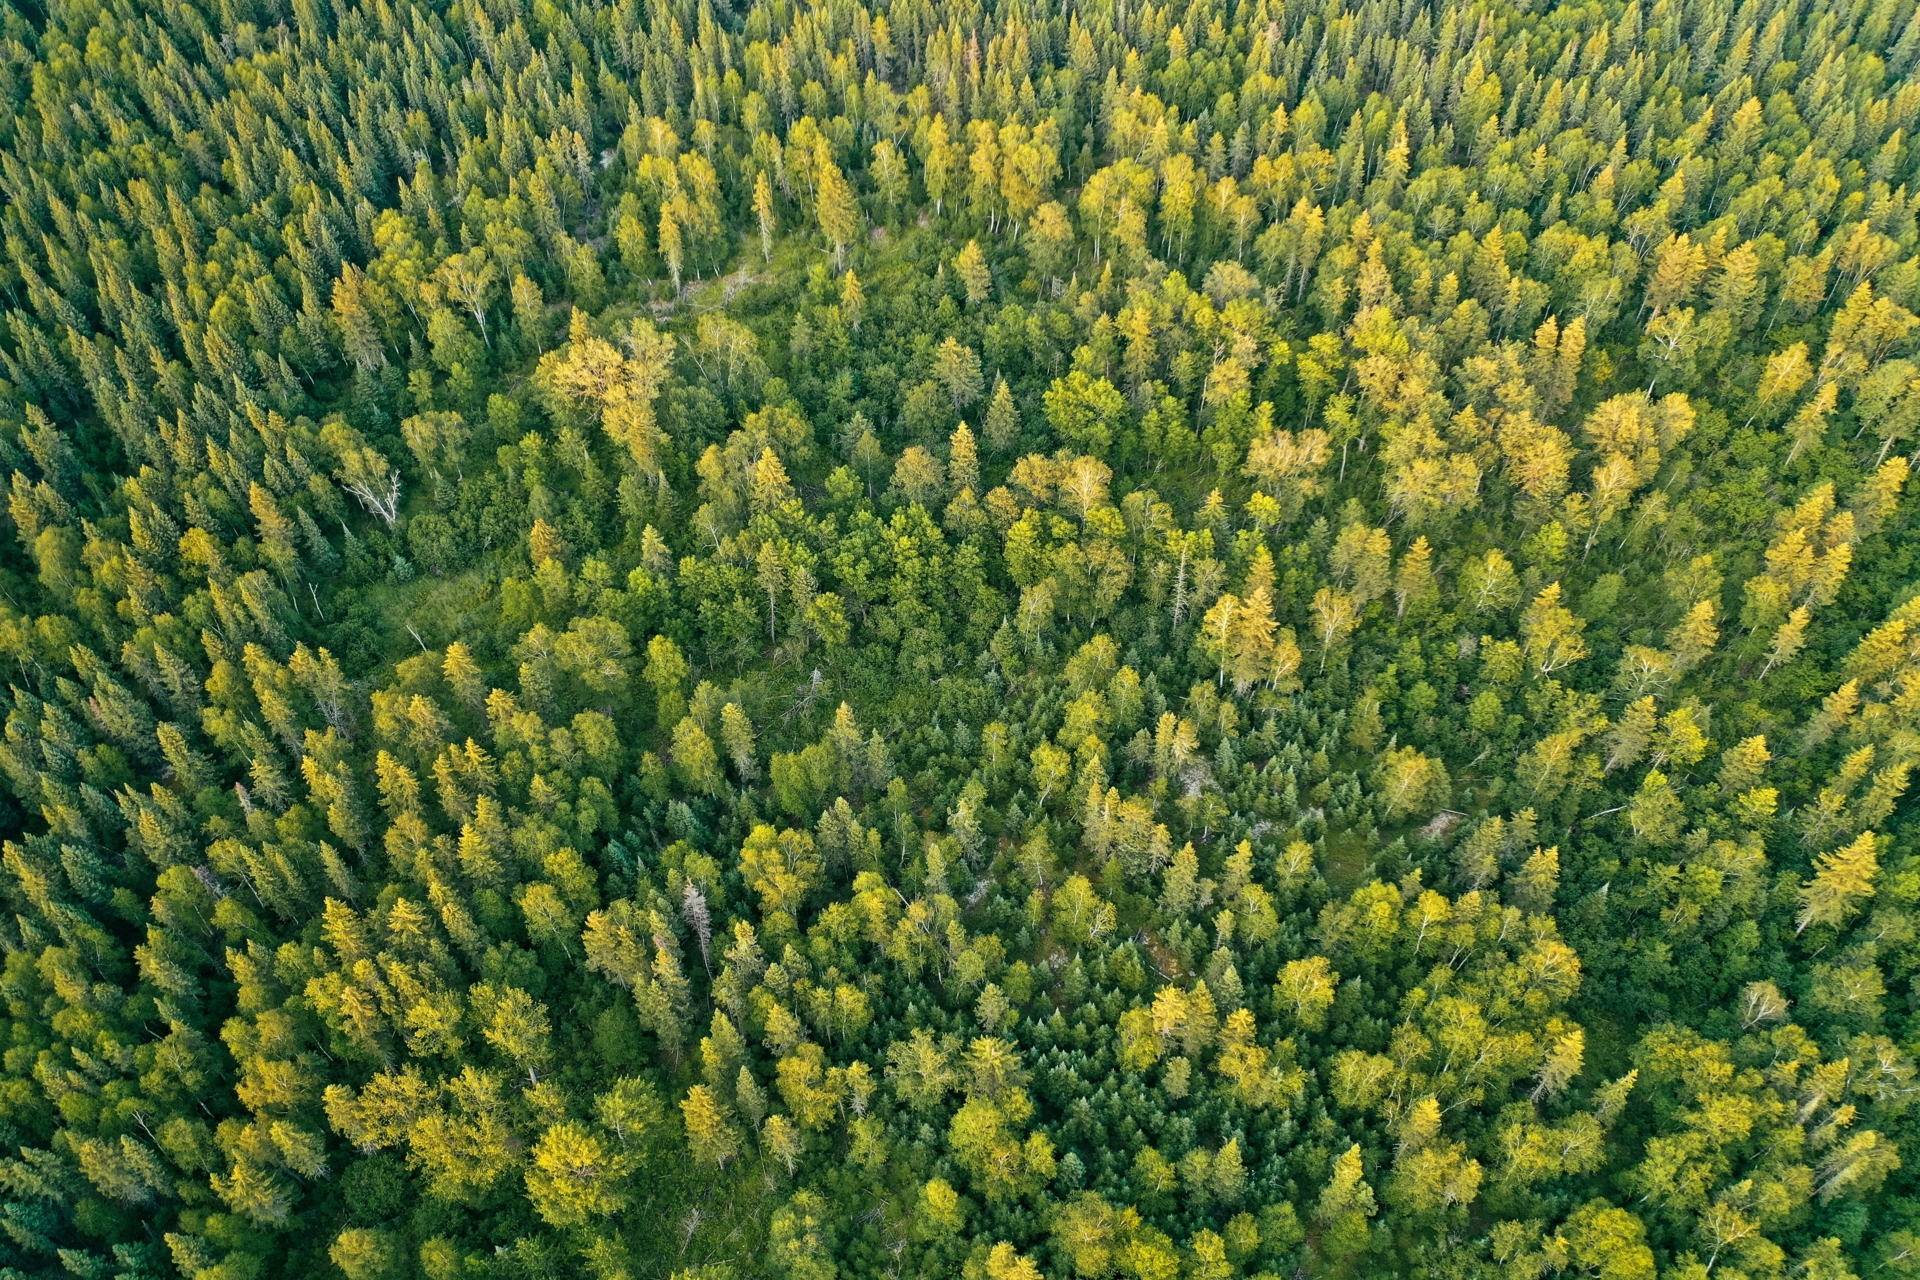 thumb_overhead-aerial-drone-shot-thick-beautiful-forest-during-sunny-daytime_1611140329.jpg